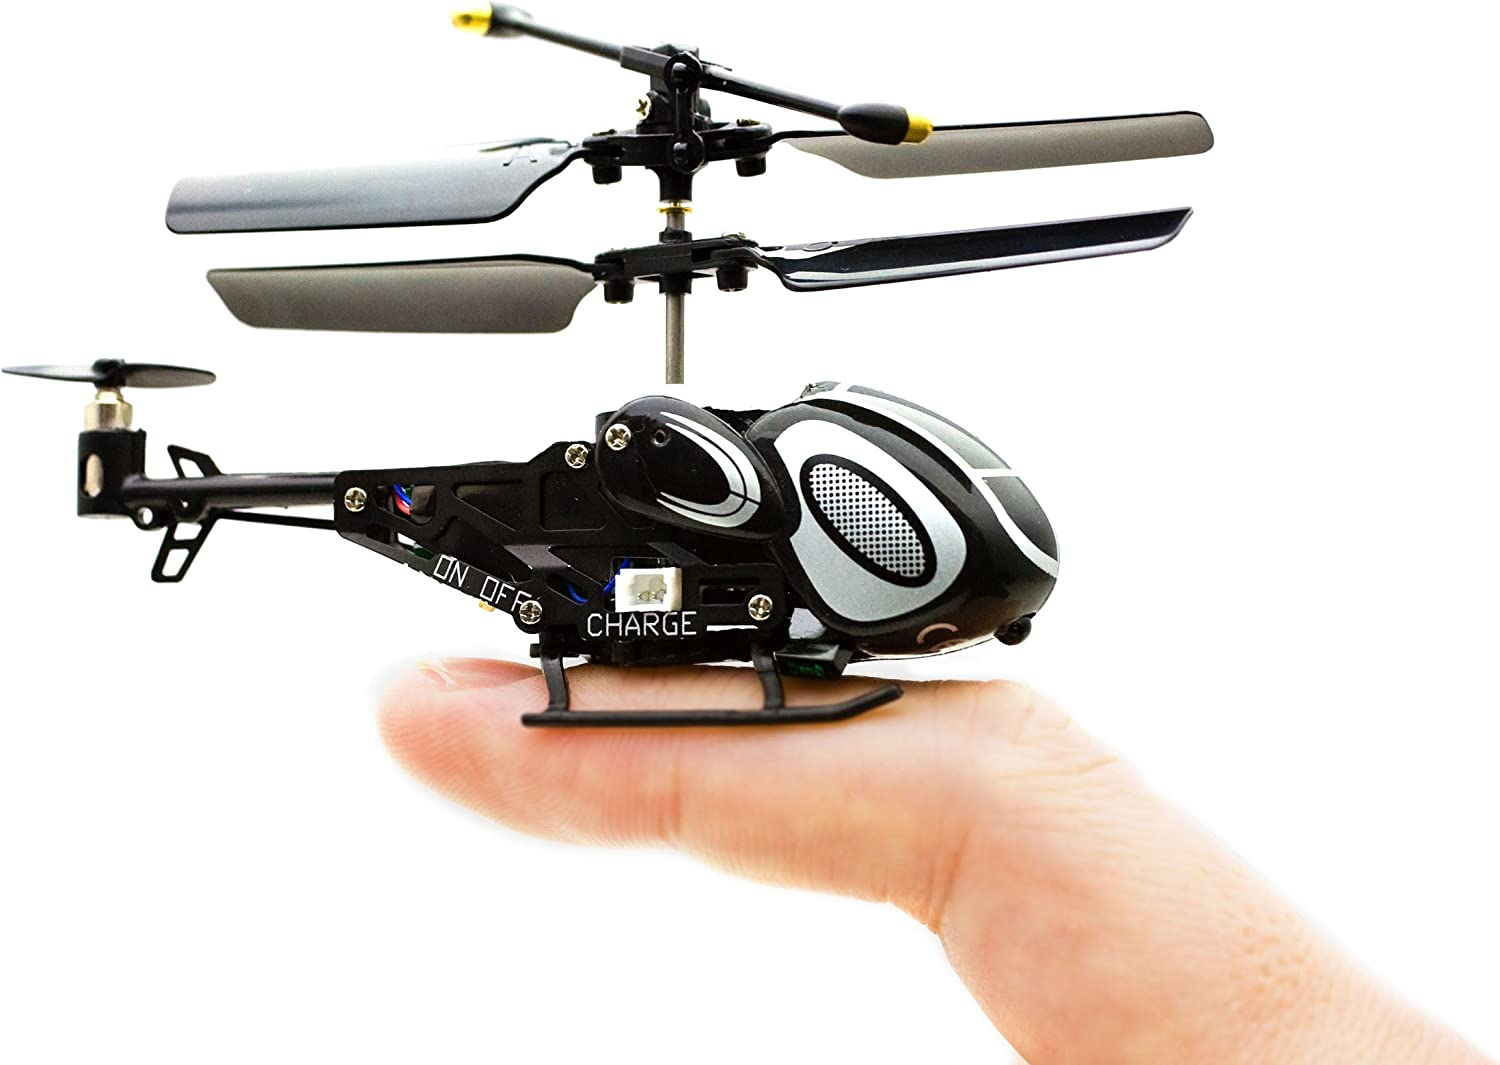 Micro Mosquito - Super Gyro 3ch R/C Infrared RC Helicopter [Toy] (japan import)